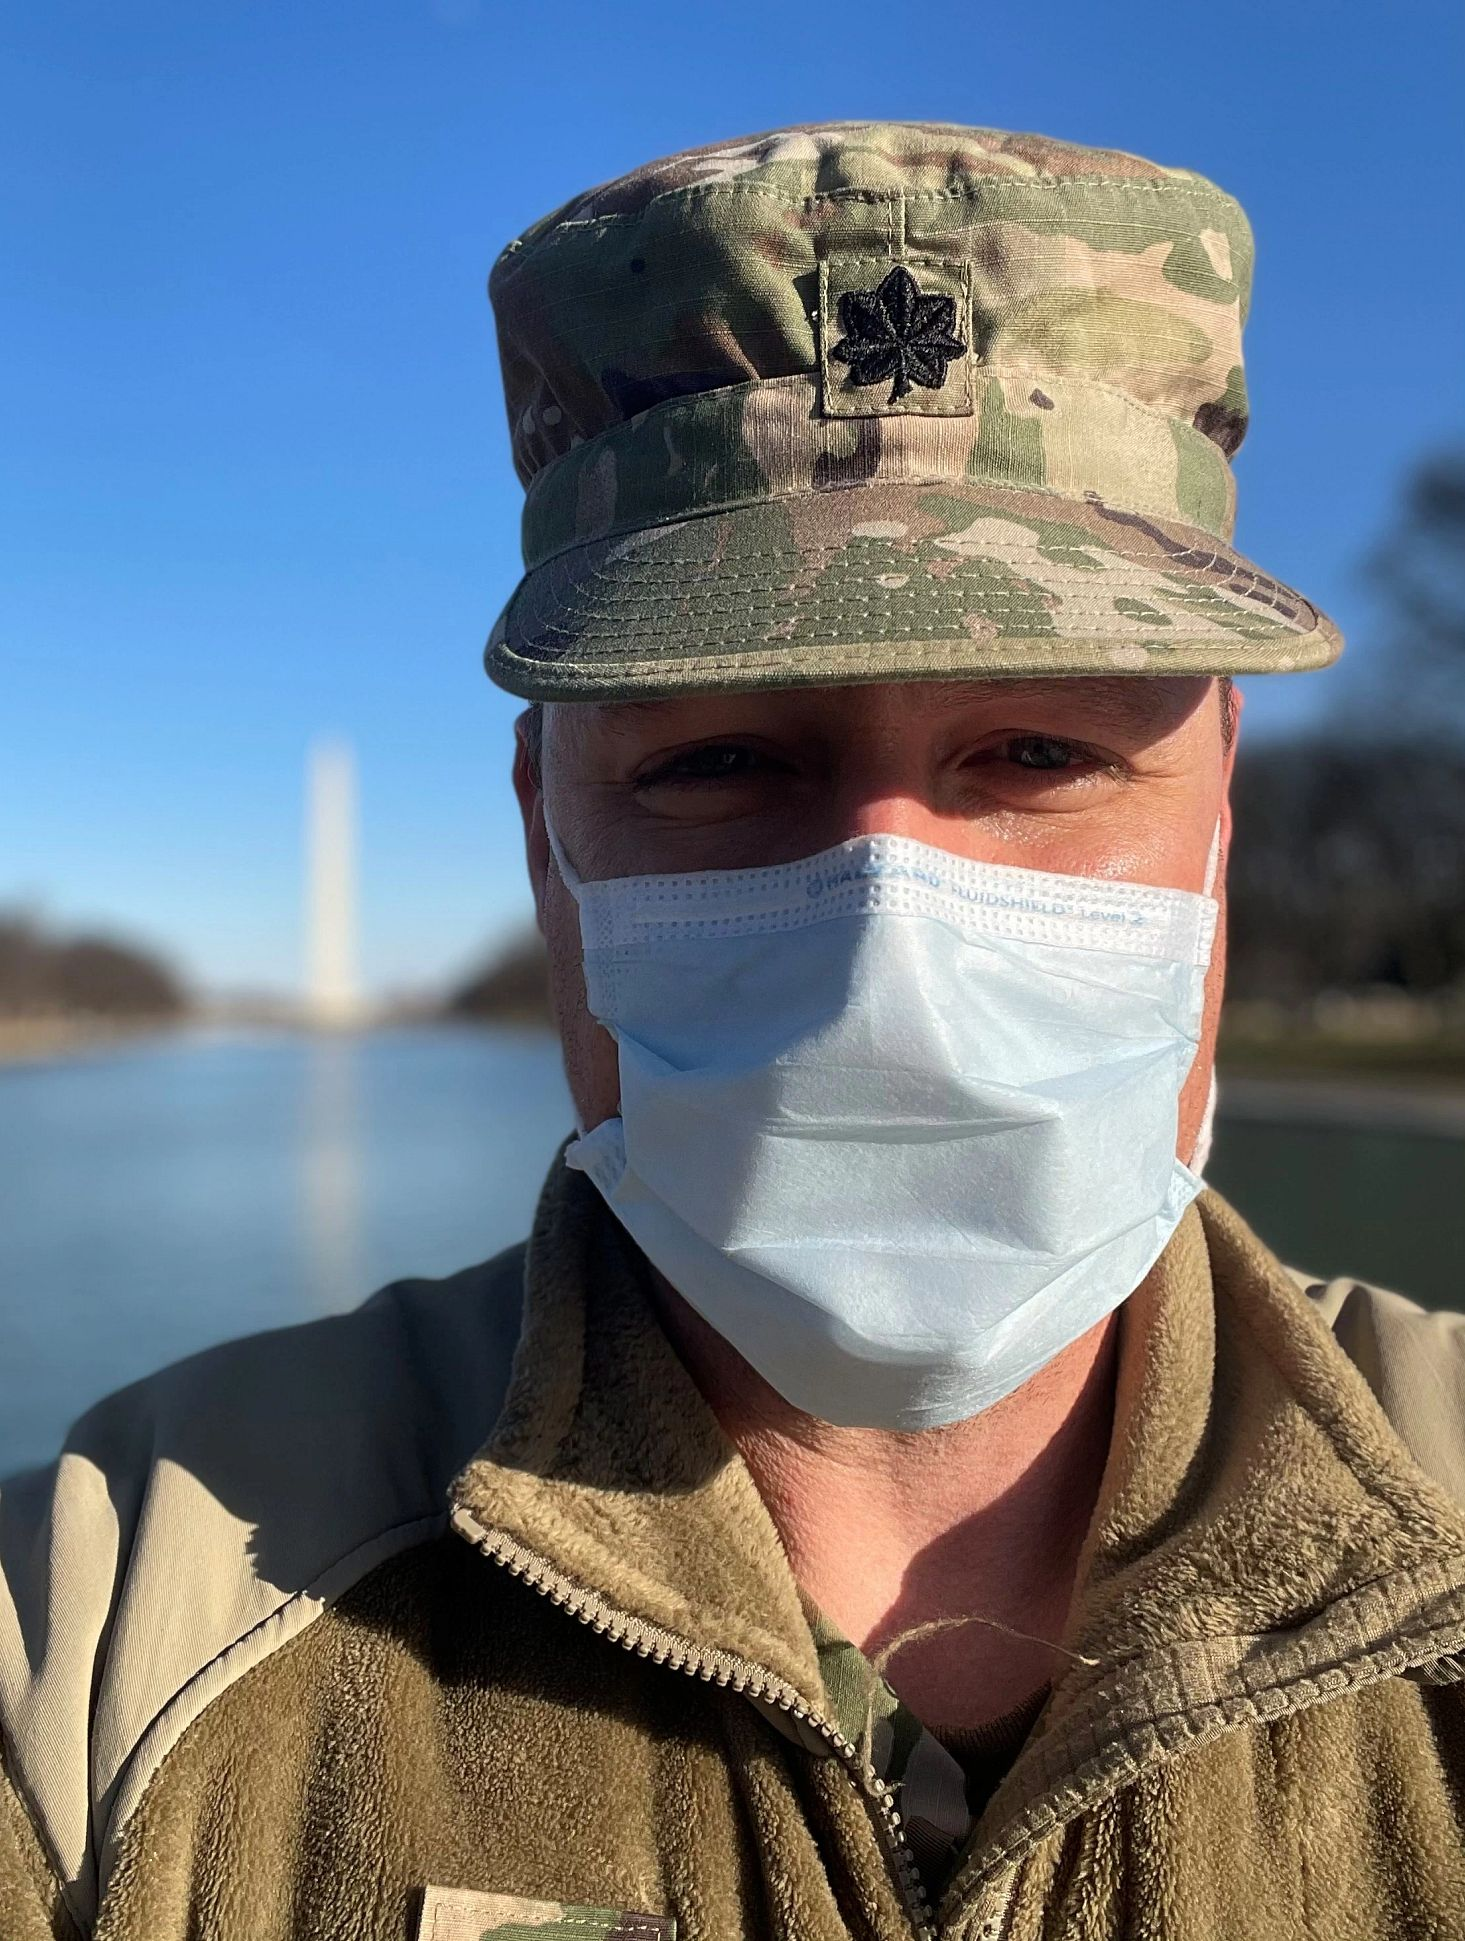 Dr. Sample wears a mask with the Washington Monument behind him